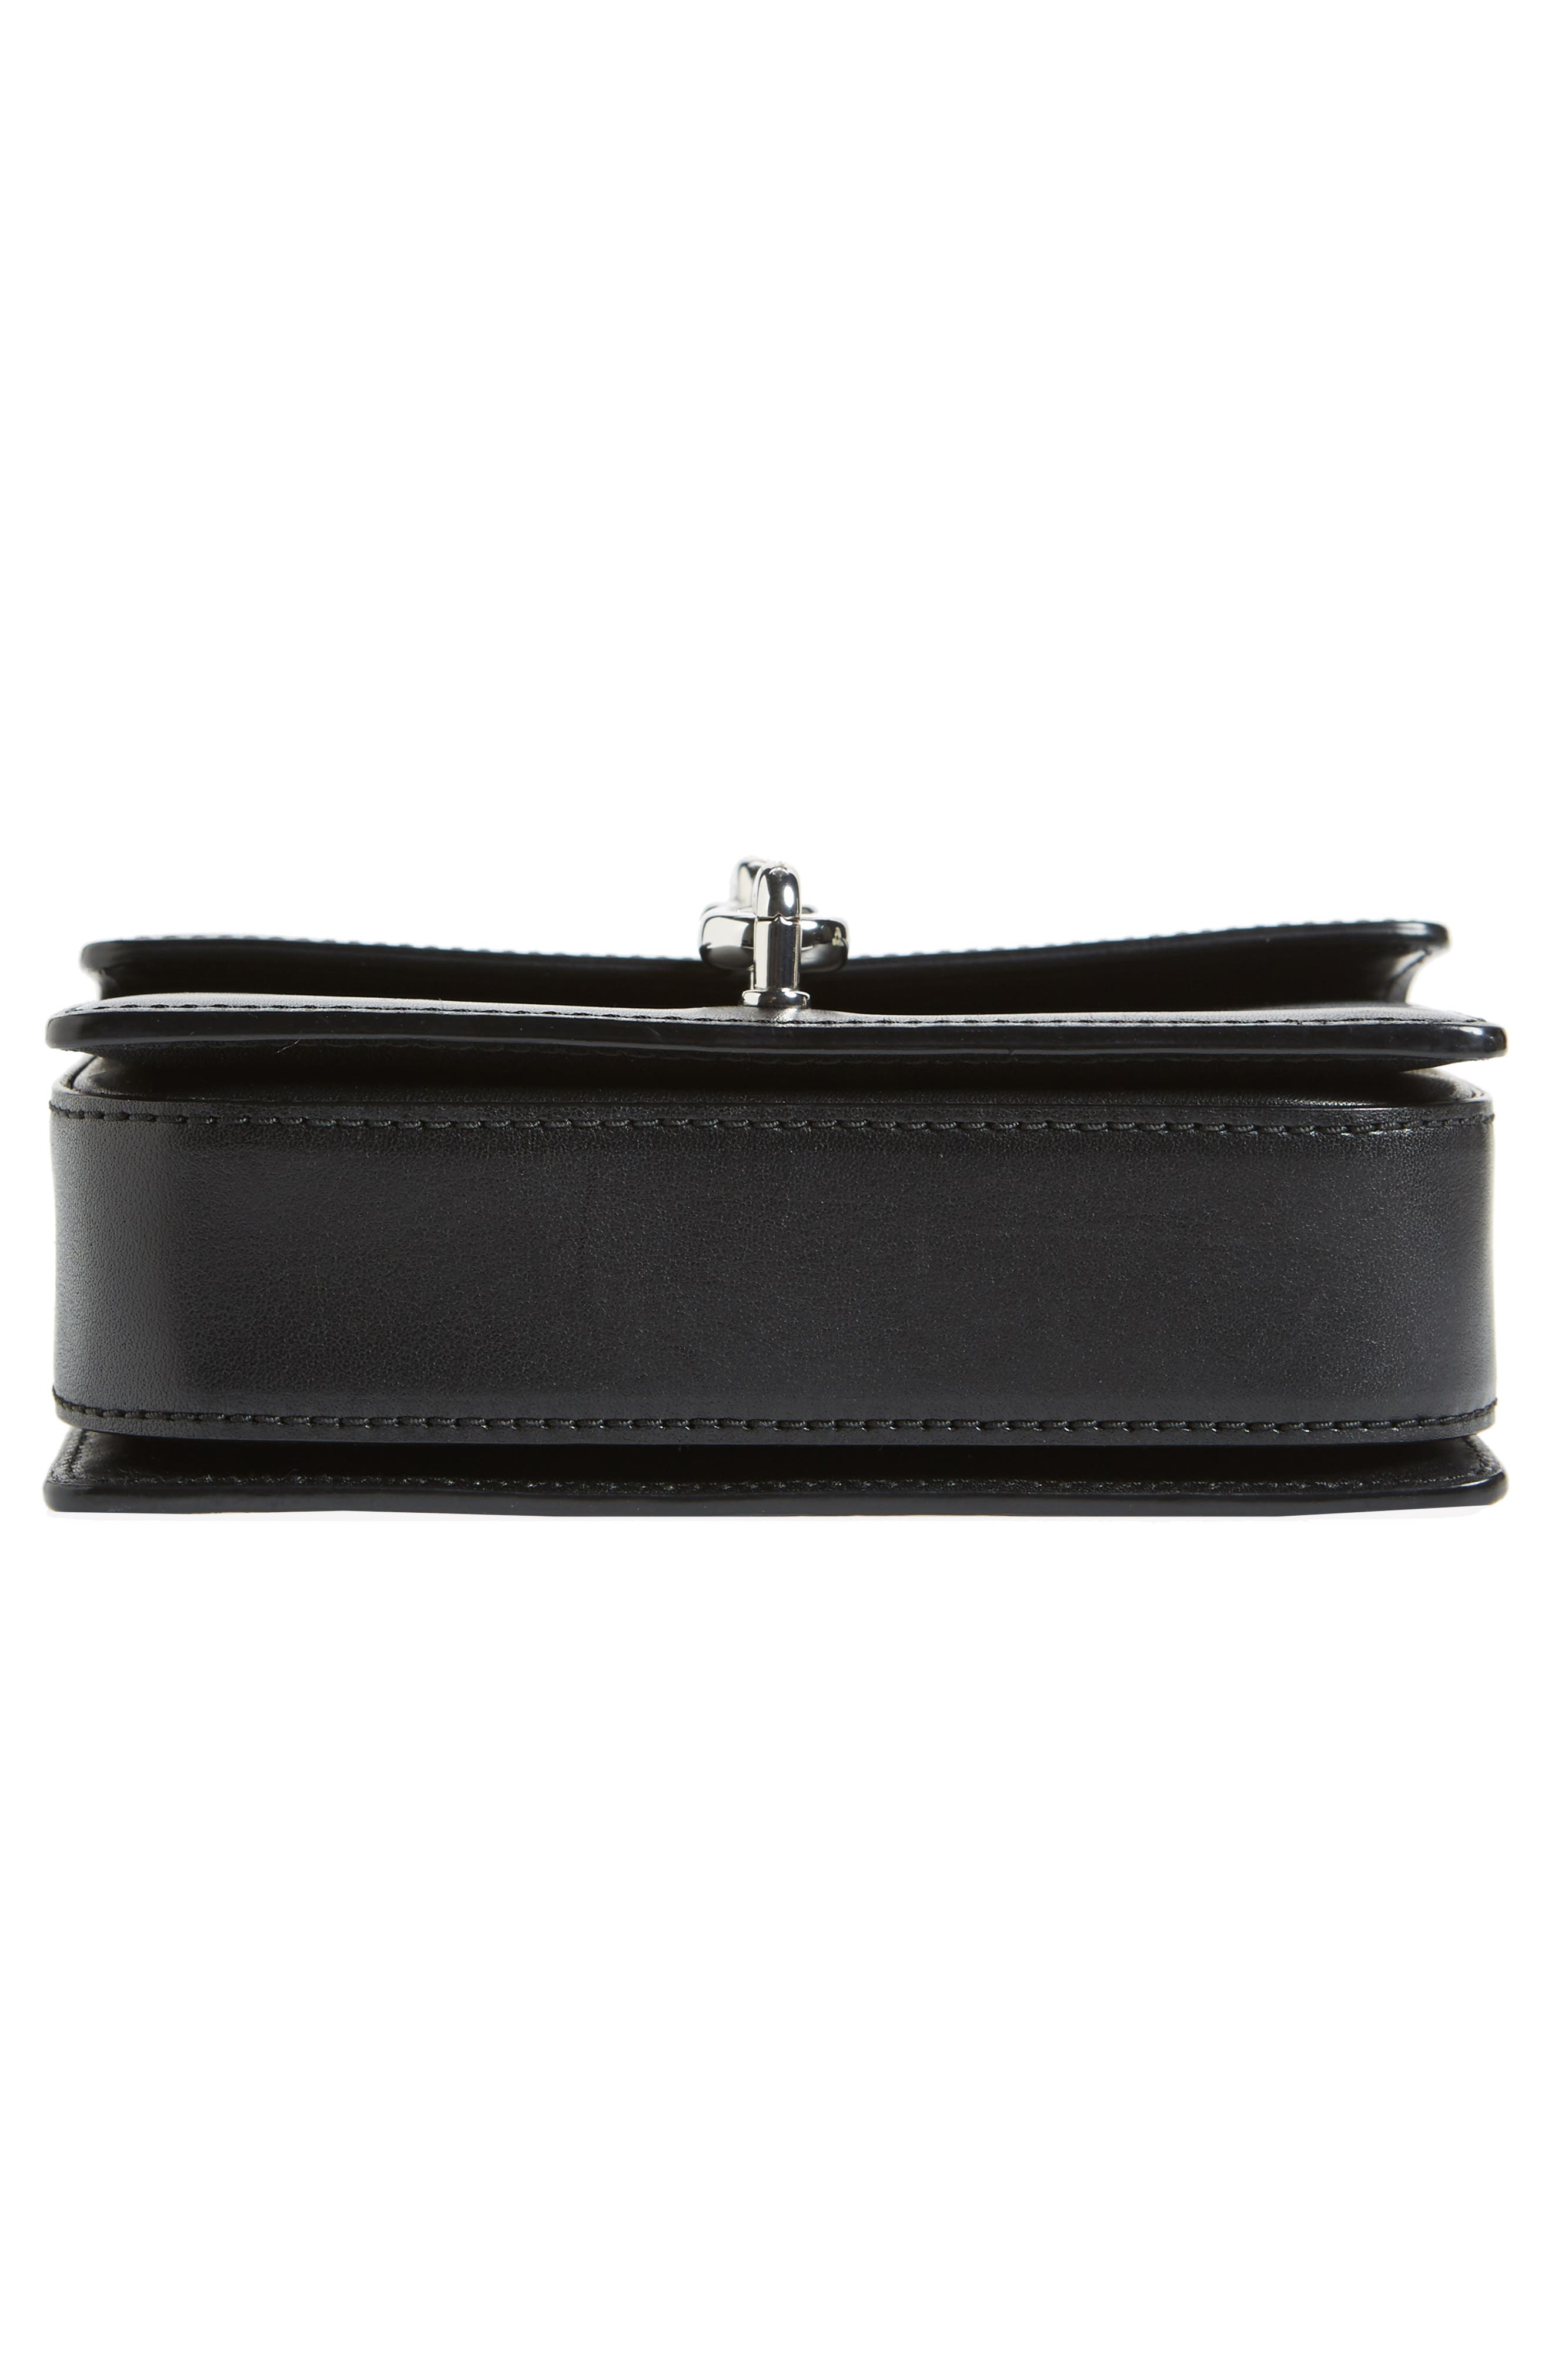 Hook Small Leather Crossbody Bag,                             Alternate thumbnail 6, color,                             Black